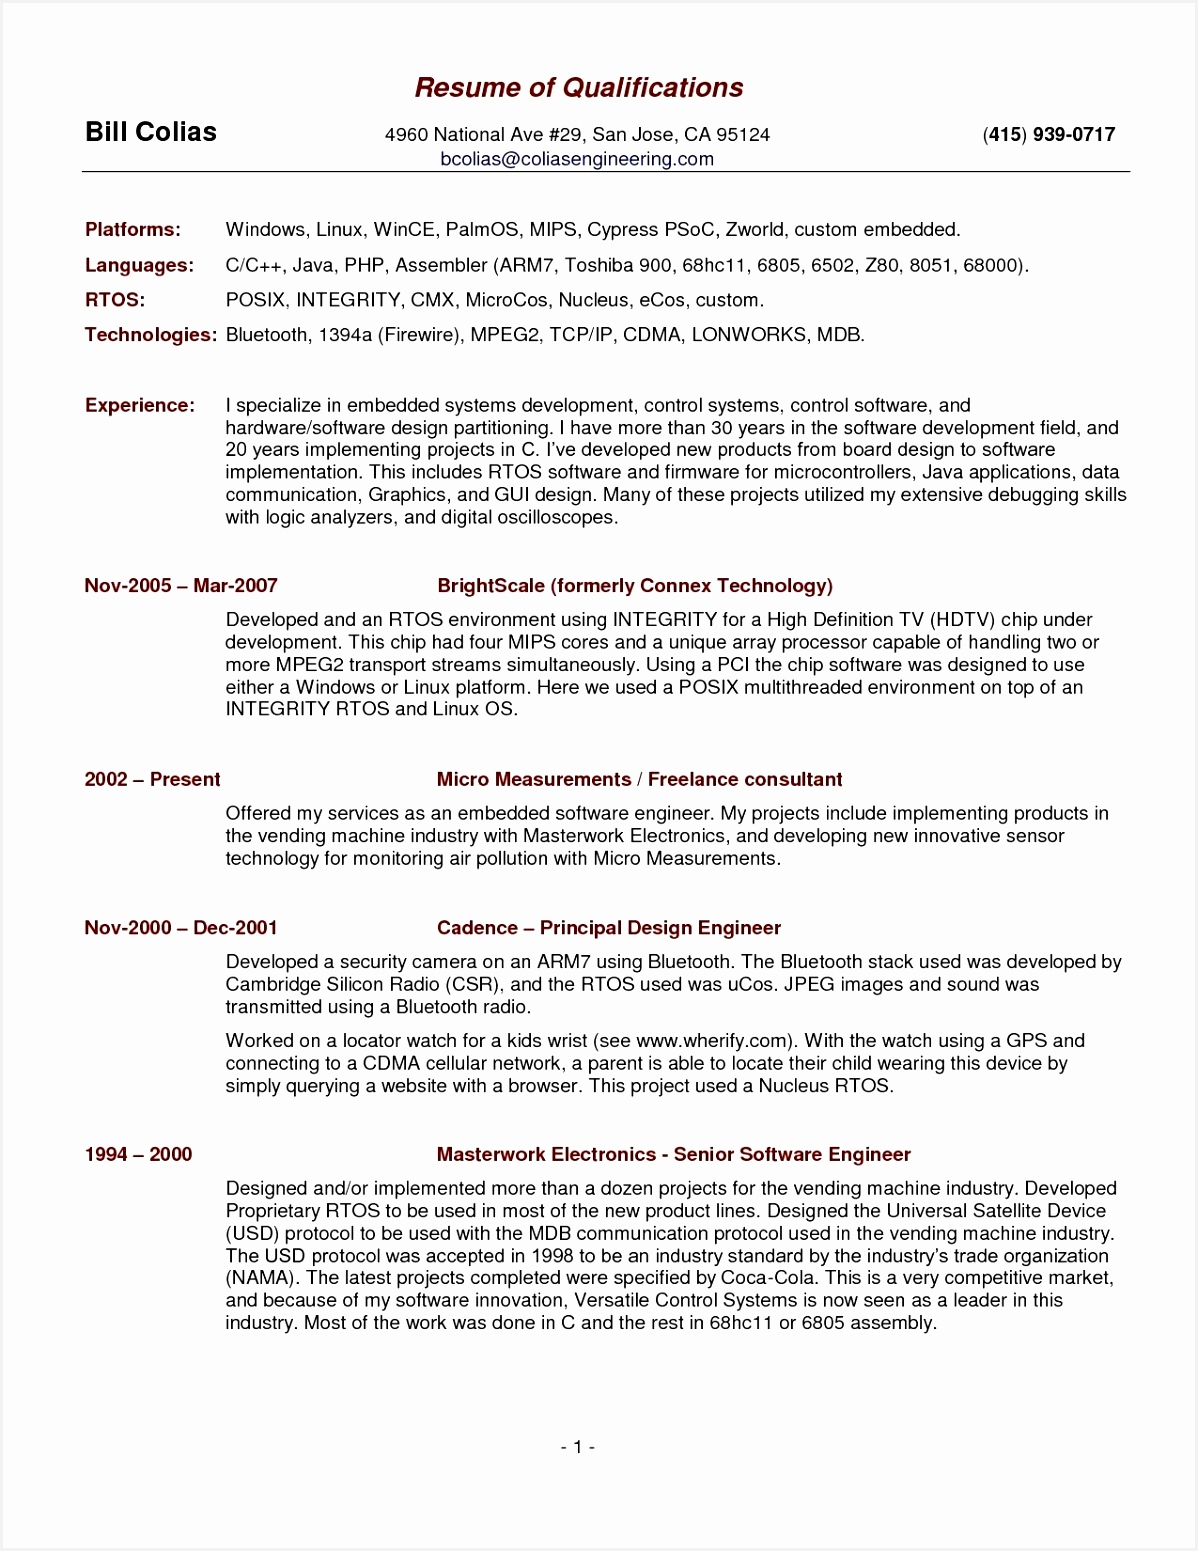 Resumes format for Freshers Dtozi Inspirational Resume format Download Fresh Lovely Pr Resume Template Elegant Of Resumes format for Freshers Yshjb Awesome New Rn Resume format Lovely New Nurse Resume Awesome Nurse Resume 0d